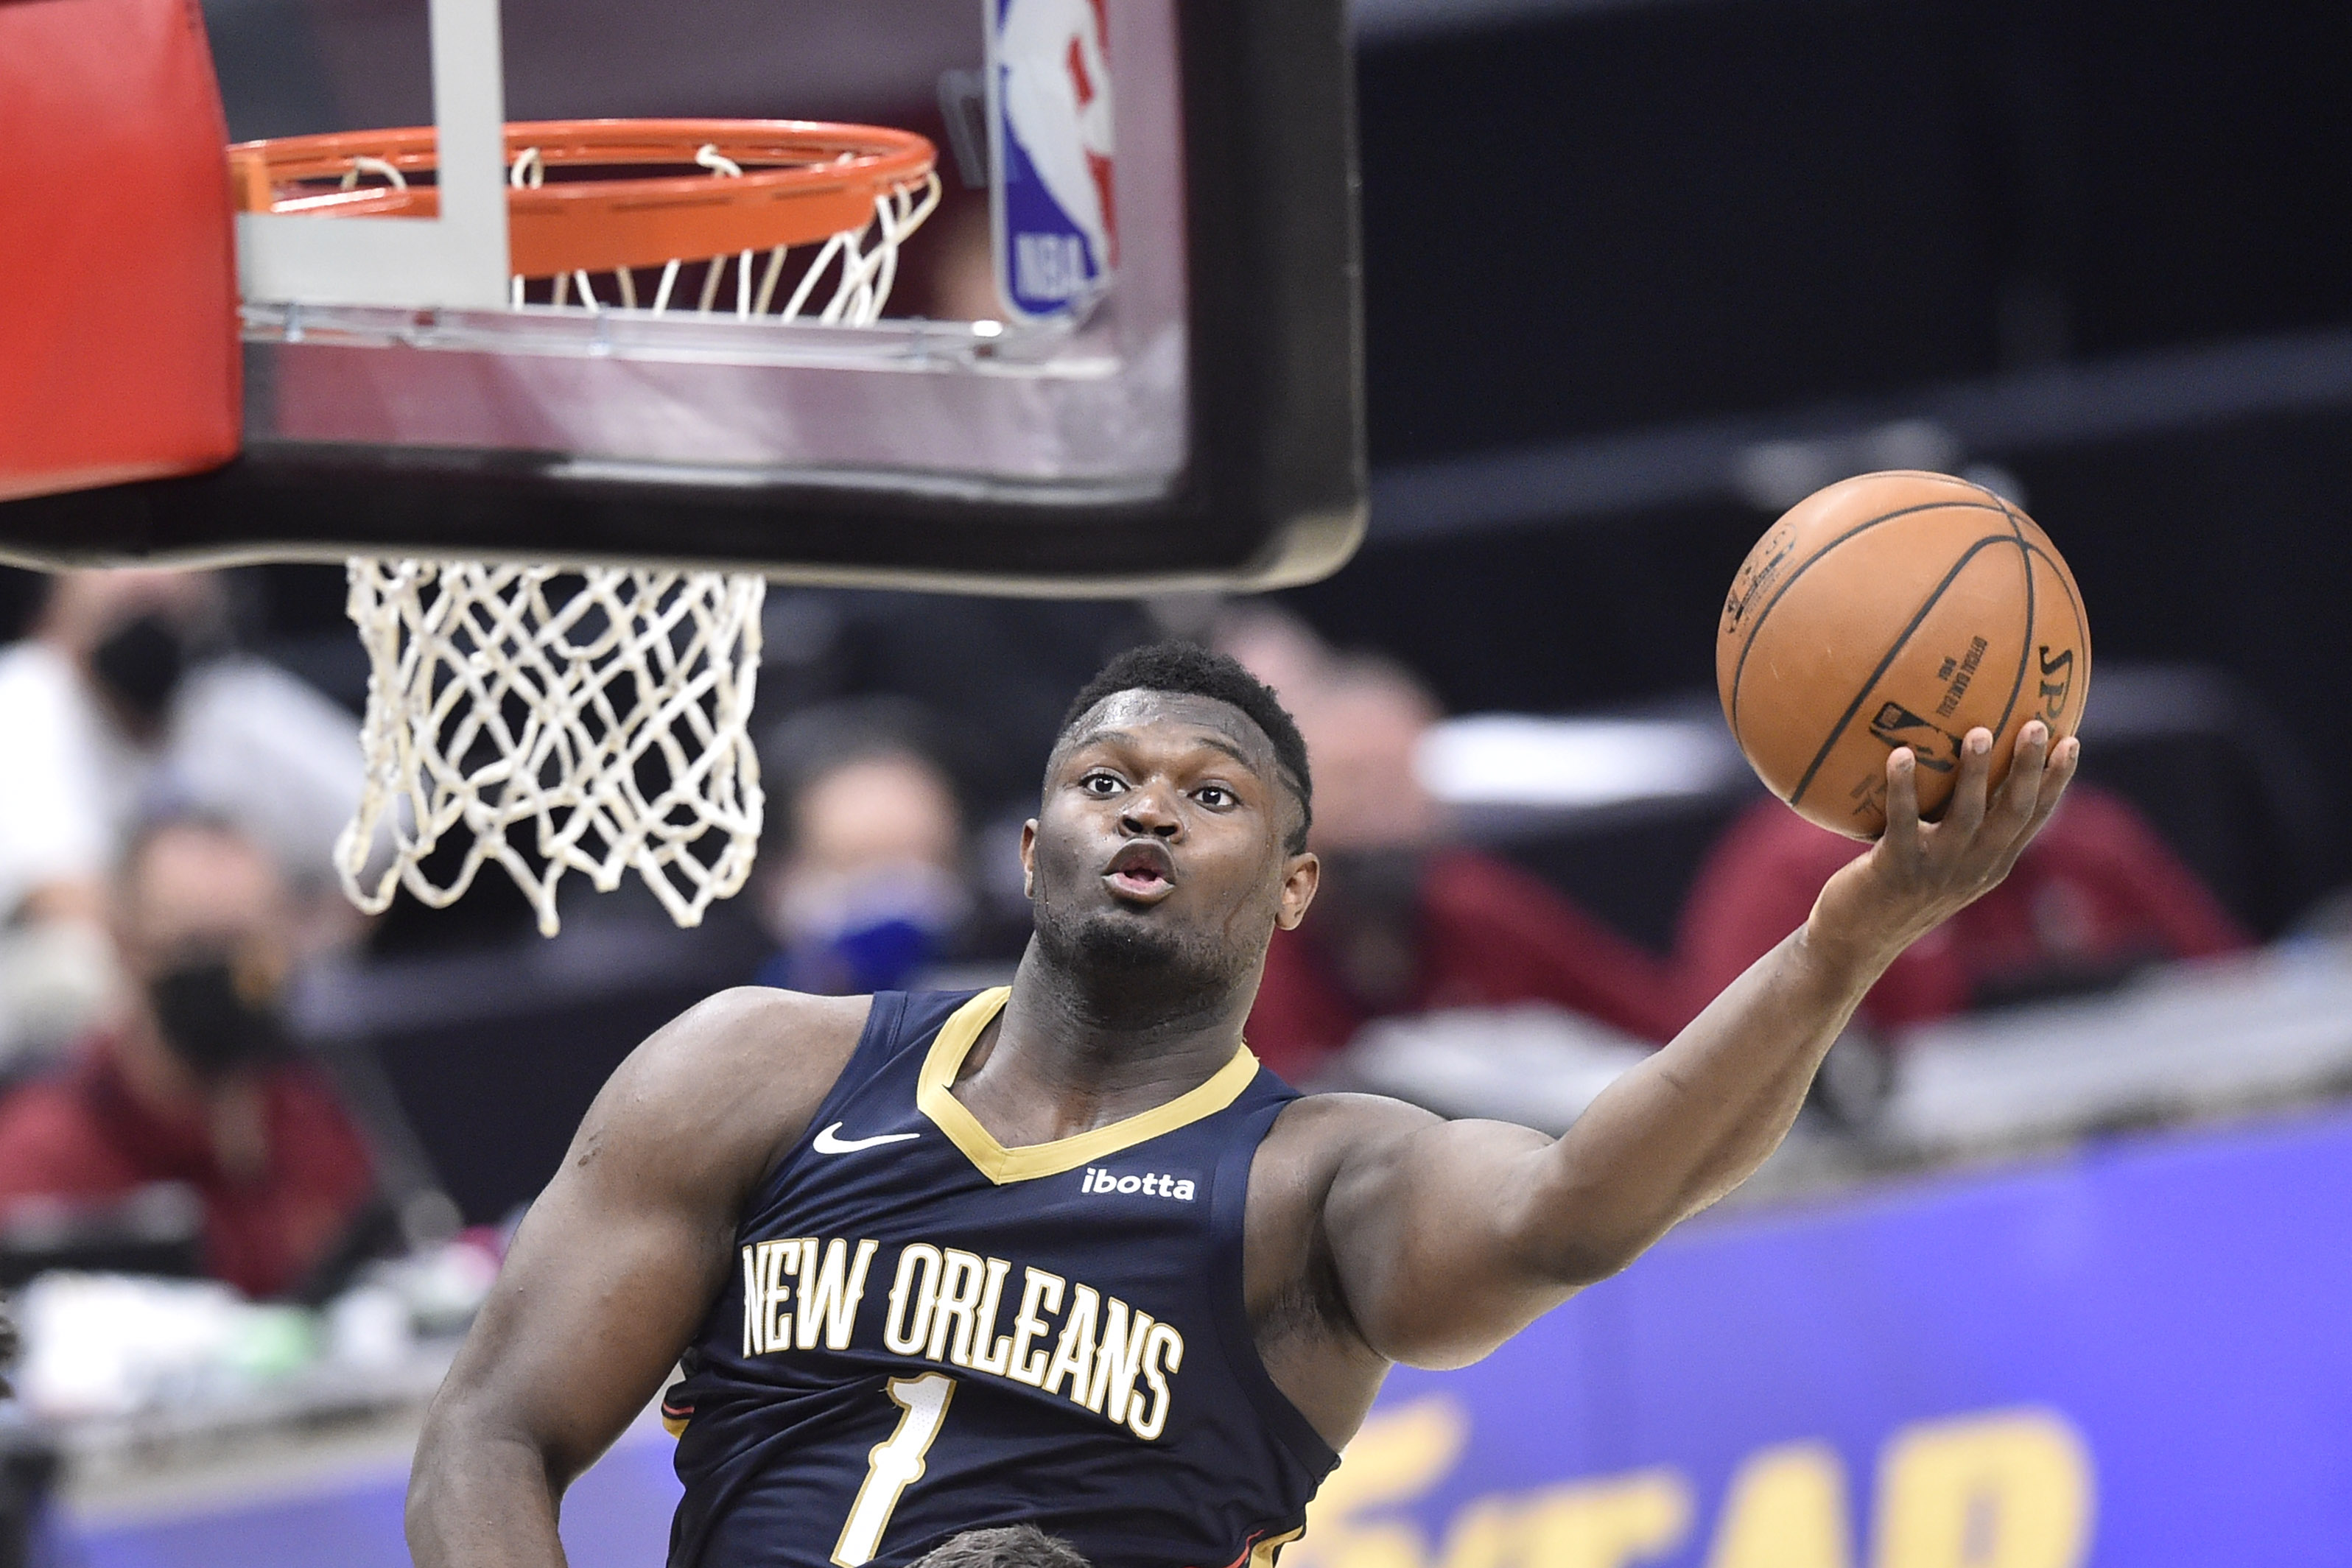 Apr 11, 2021; Cleveland, Ohio, USA; New Orleans Pelicans forward Zion Williamson (1) goes to the basket during the fourth quarter against the Cleveland Cavaliers at Rocket Mortgage FieldHouse.